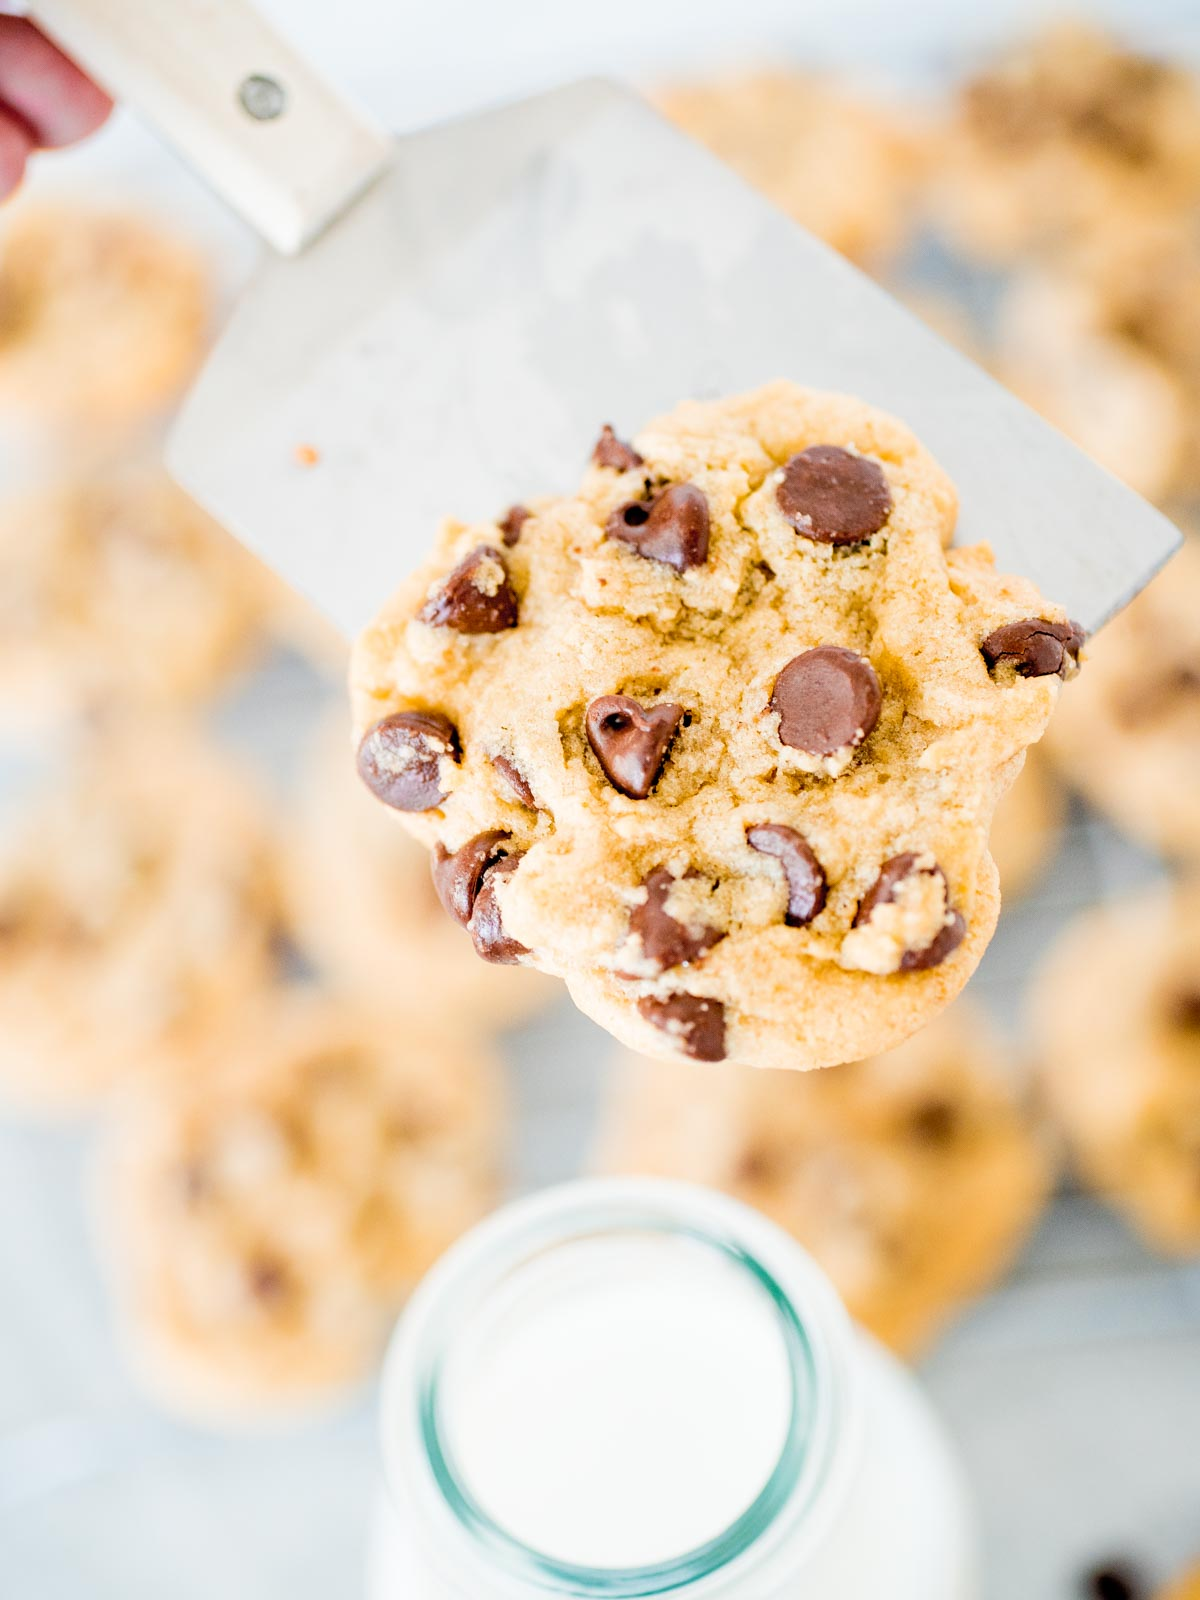 chocolate chip cookie on a spatula over a glass of milk